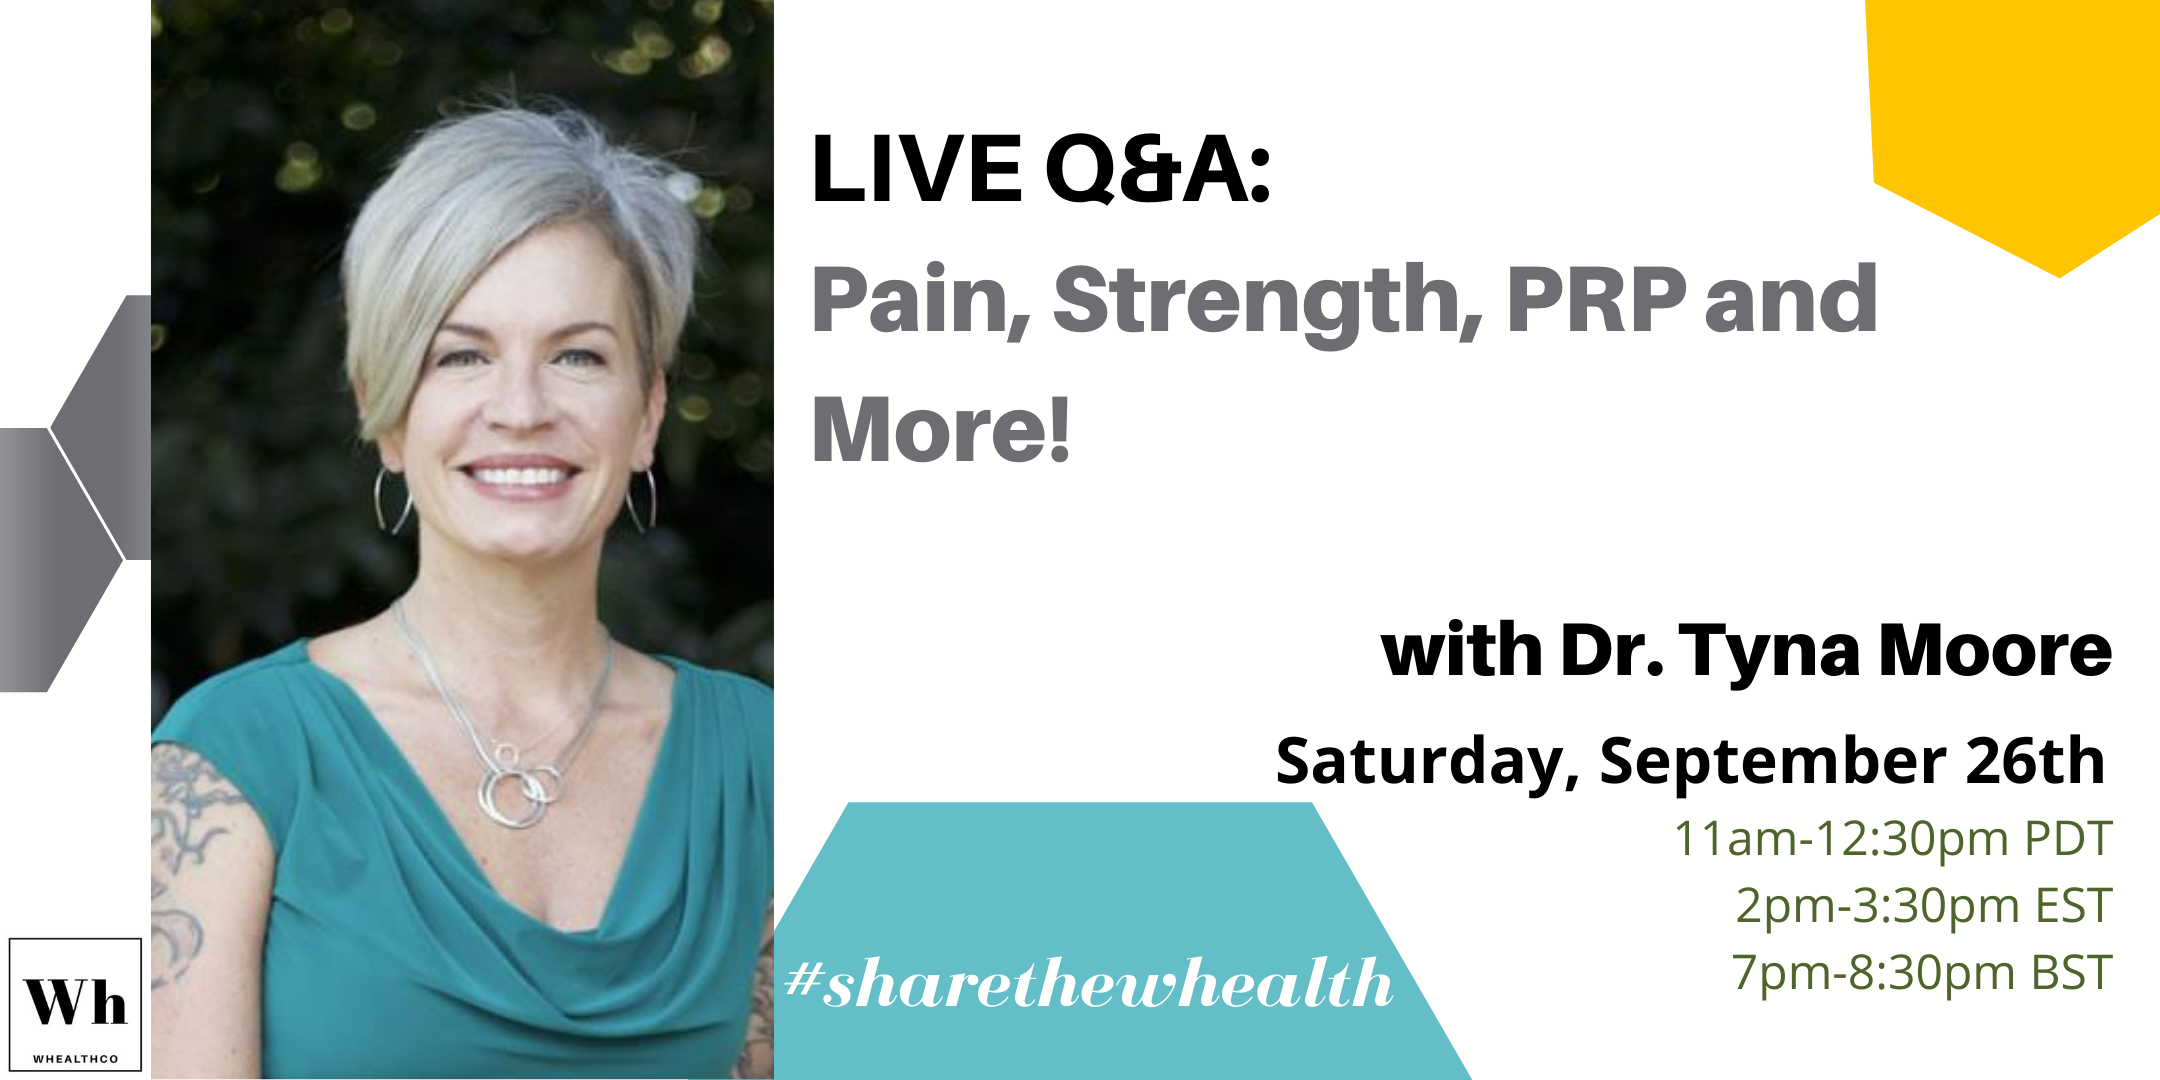 Pain, Strength, PRP and more with Dr. Tyna Moore